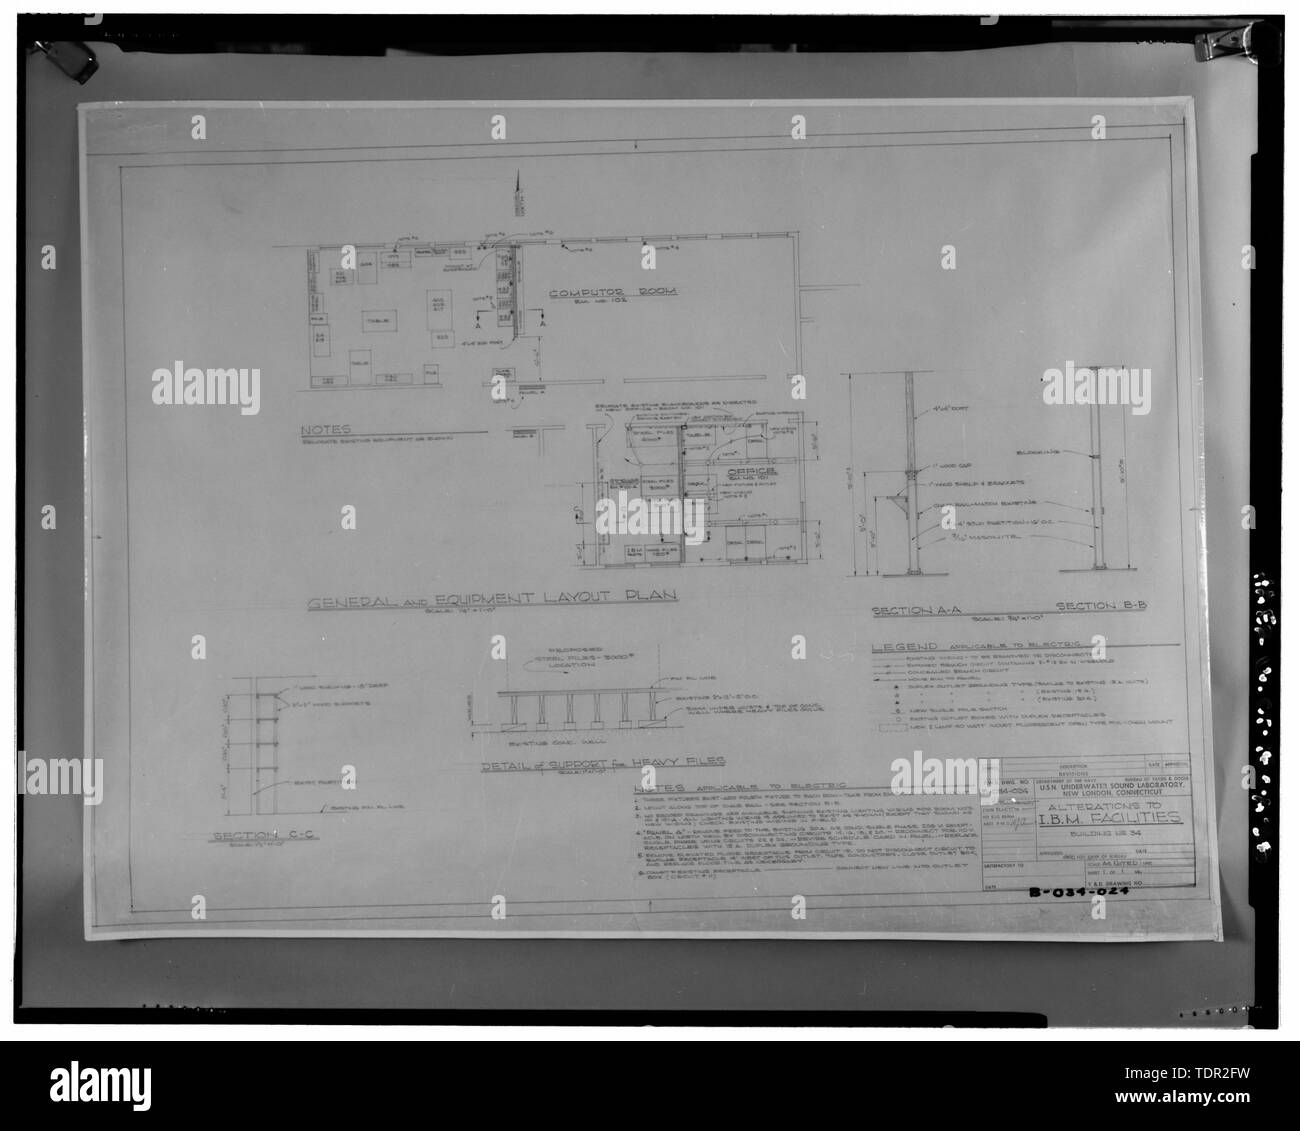 Photograph of plans for alterations to IBM facilities, drawn by U.S. Navy Bureau of Yards and Docks, c. 1960. Drawing on file at Caretaker Site Office, Naval Undersea Warfare Center, New London. Copyright-free. - Naval Undersea Warfare Center, Bowditch Hall, 600 feet east of Smith Street and 350 feet south of Columbia Cove, West bank of Thames River, New London, New London County, CT - Stock Image